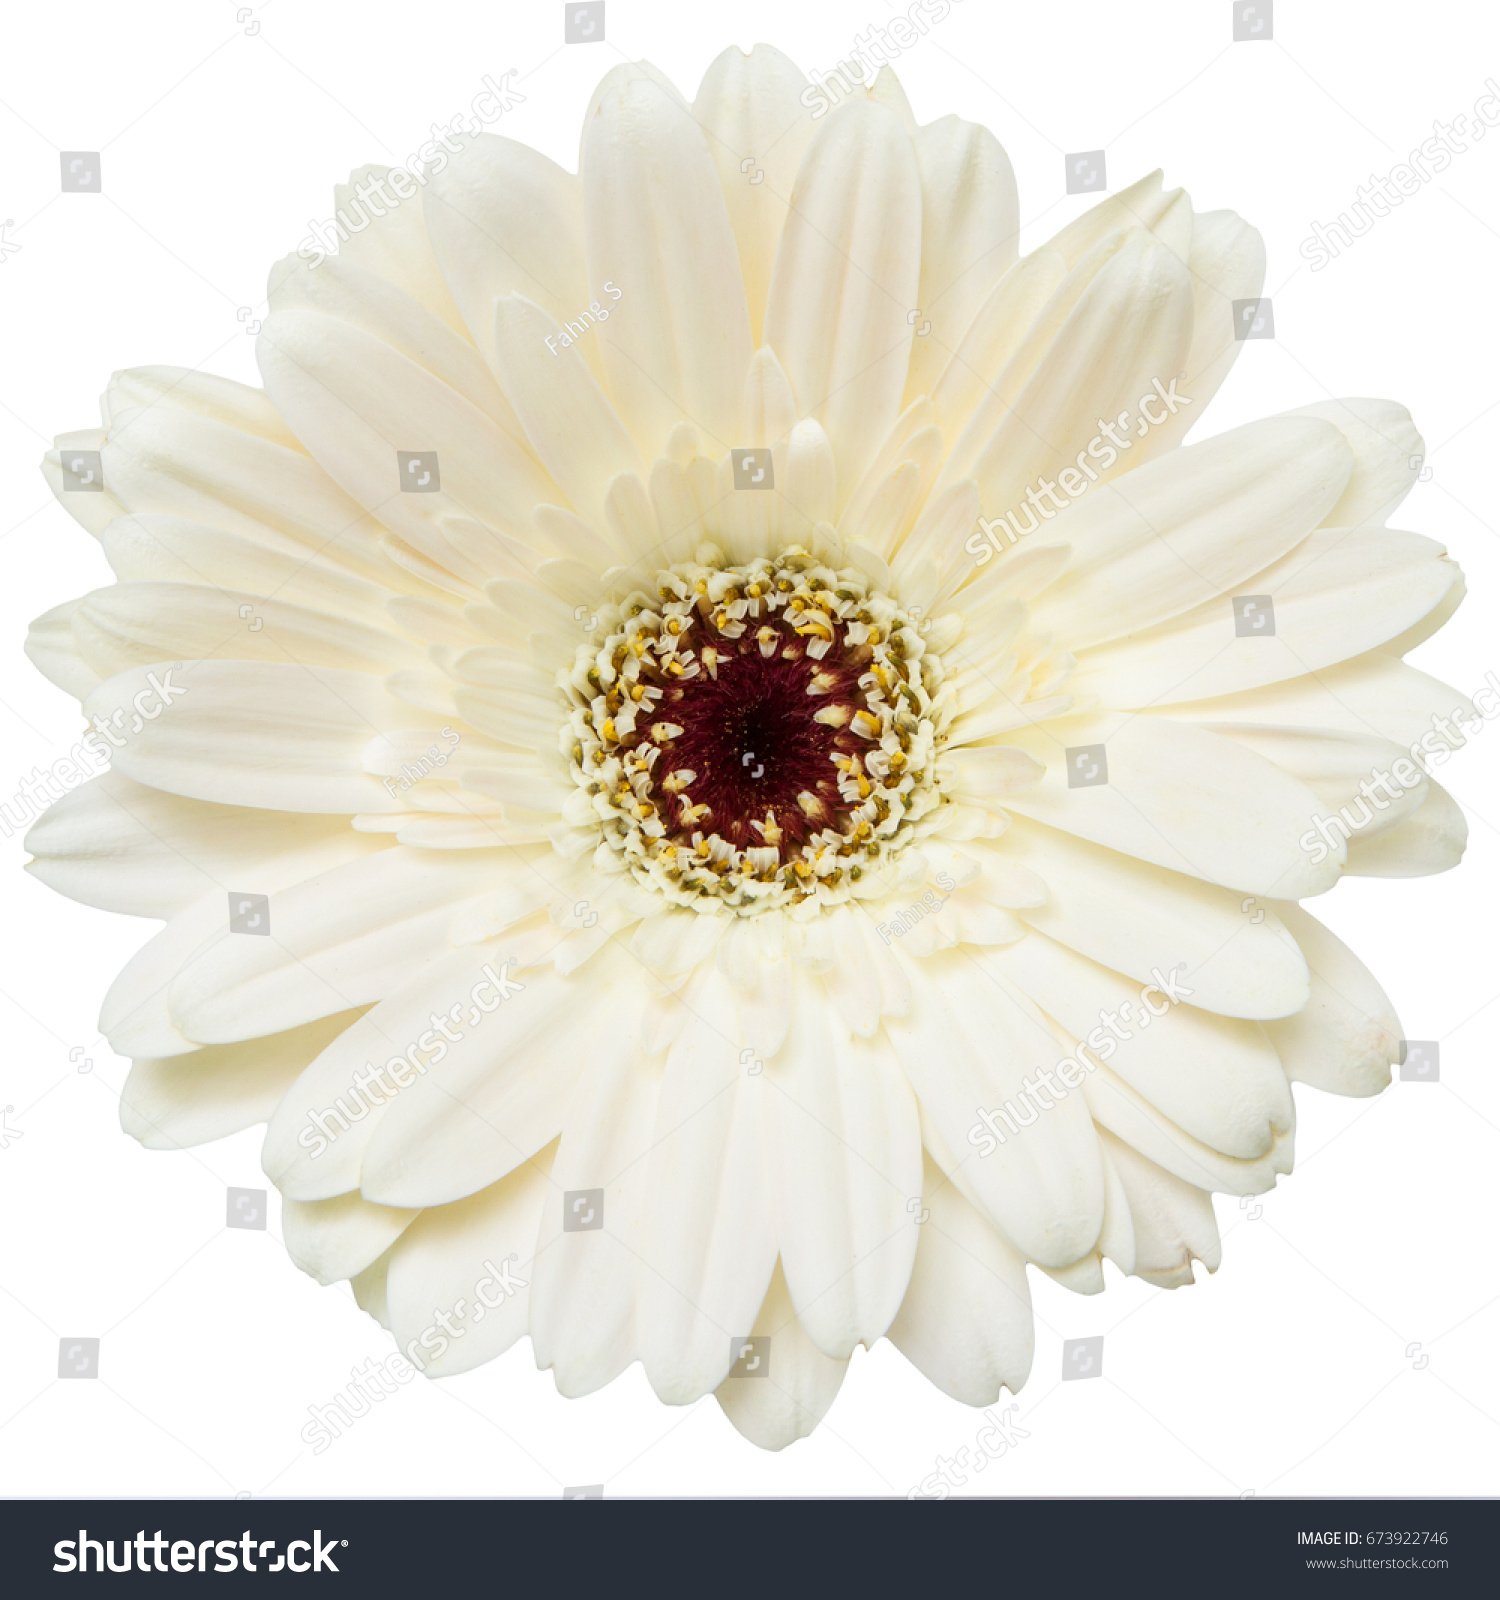 Top View White Gerbera Flower Isolated Stock Photo Royalty Free